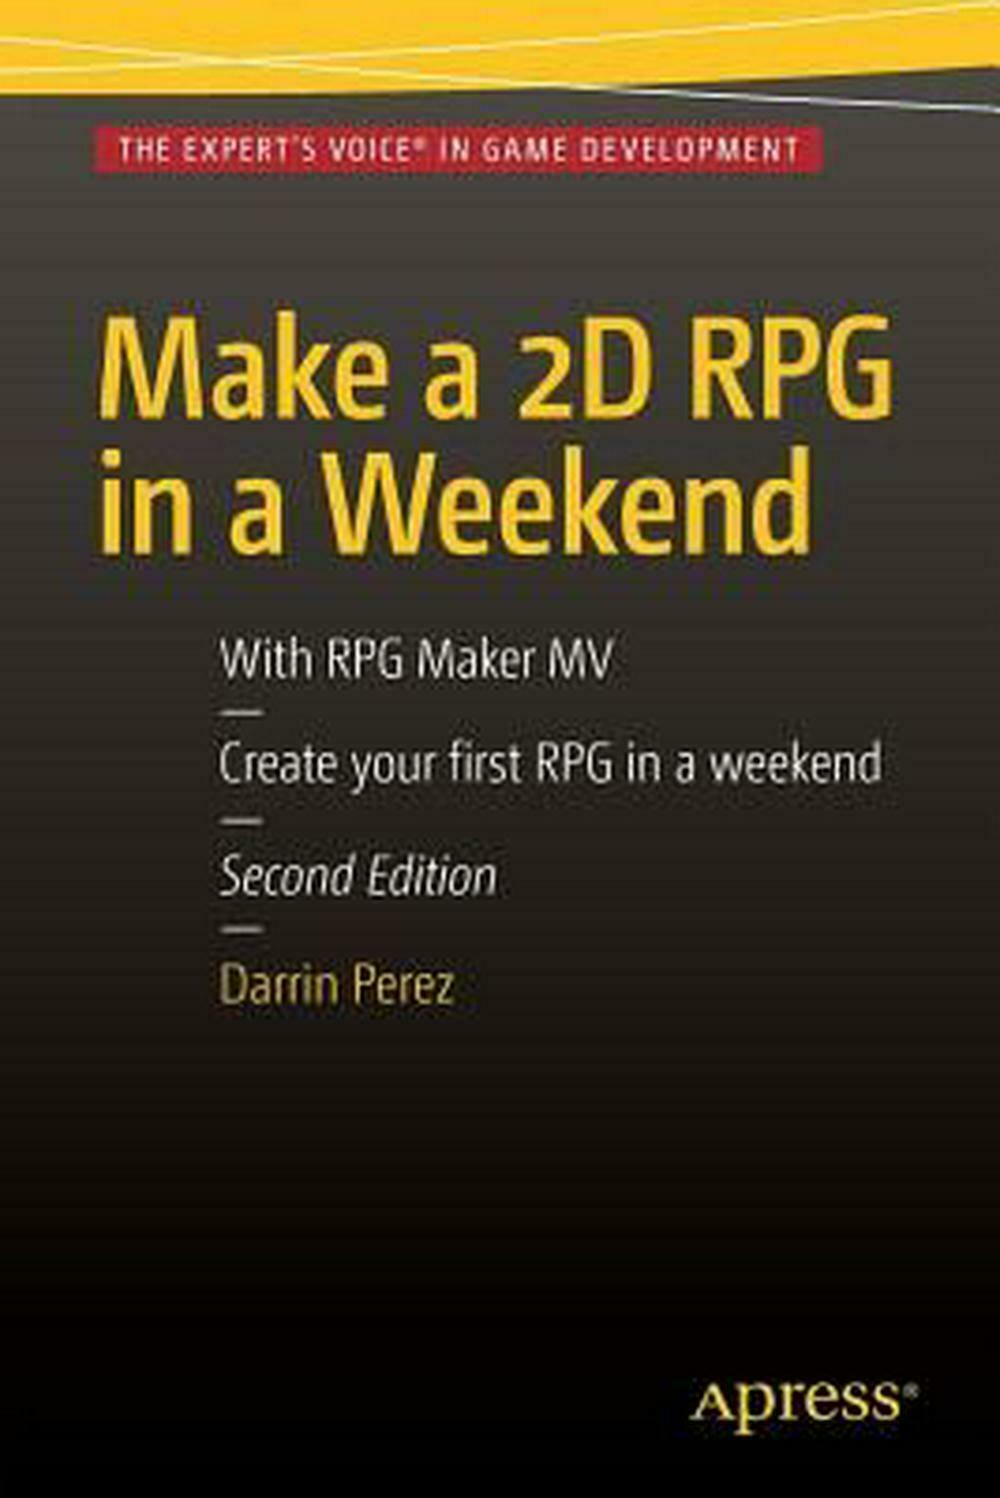 Make a 2D RPG in a Weekend: Second Edition: With RPG Maker Mv by Darrin Perez (E |